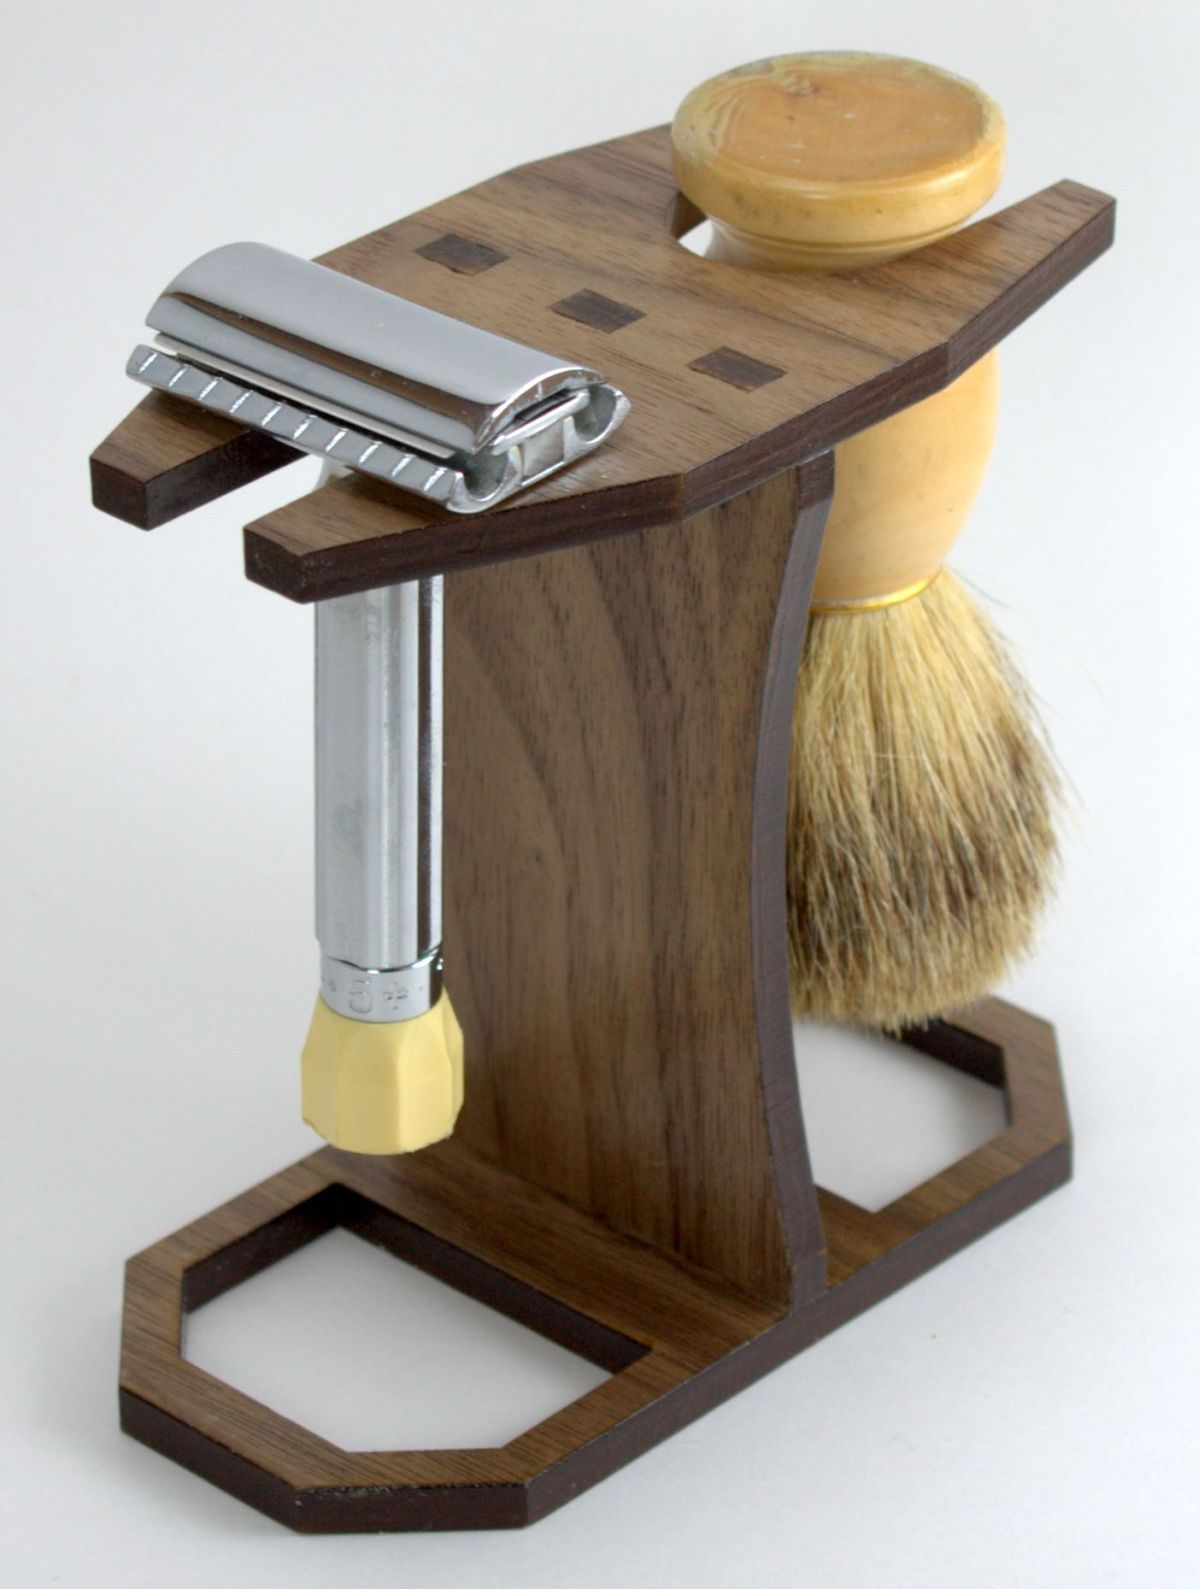 Pin on Wet Shaving / Vintage Shaving and Collecting